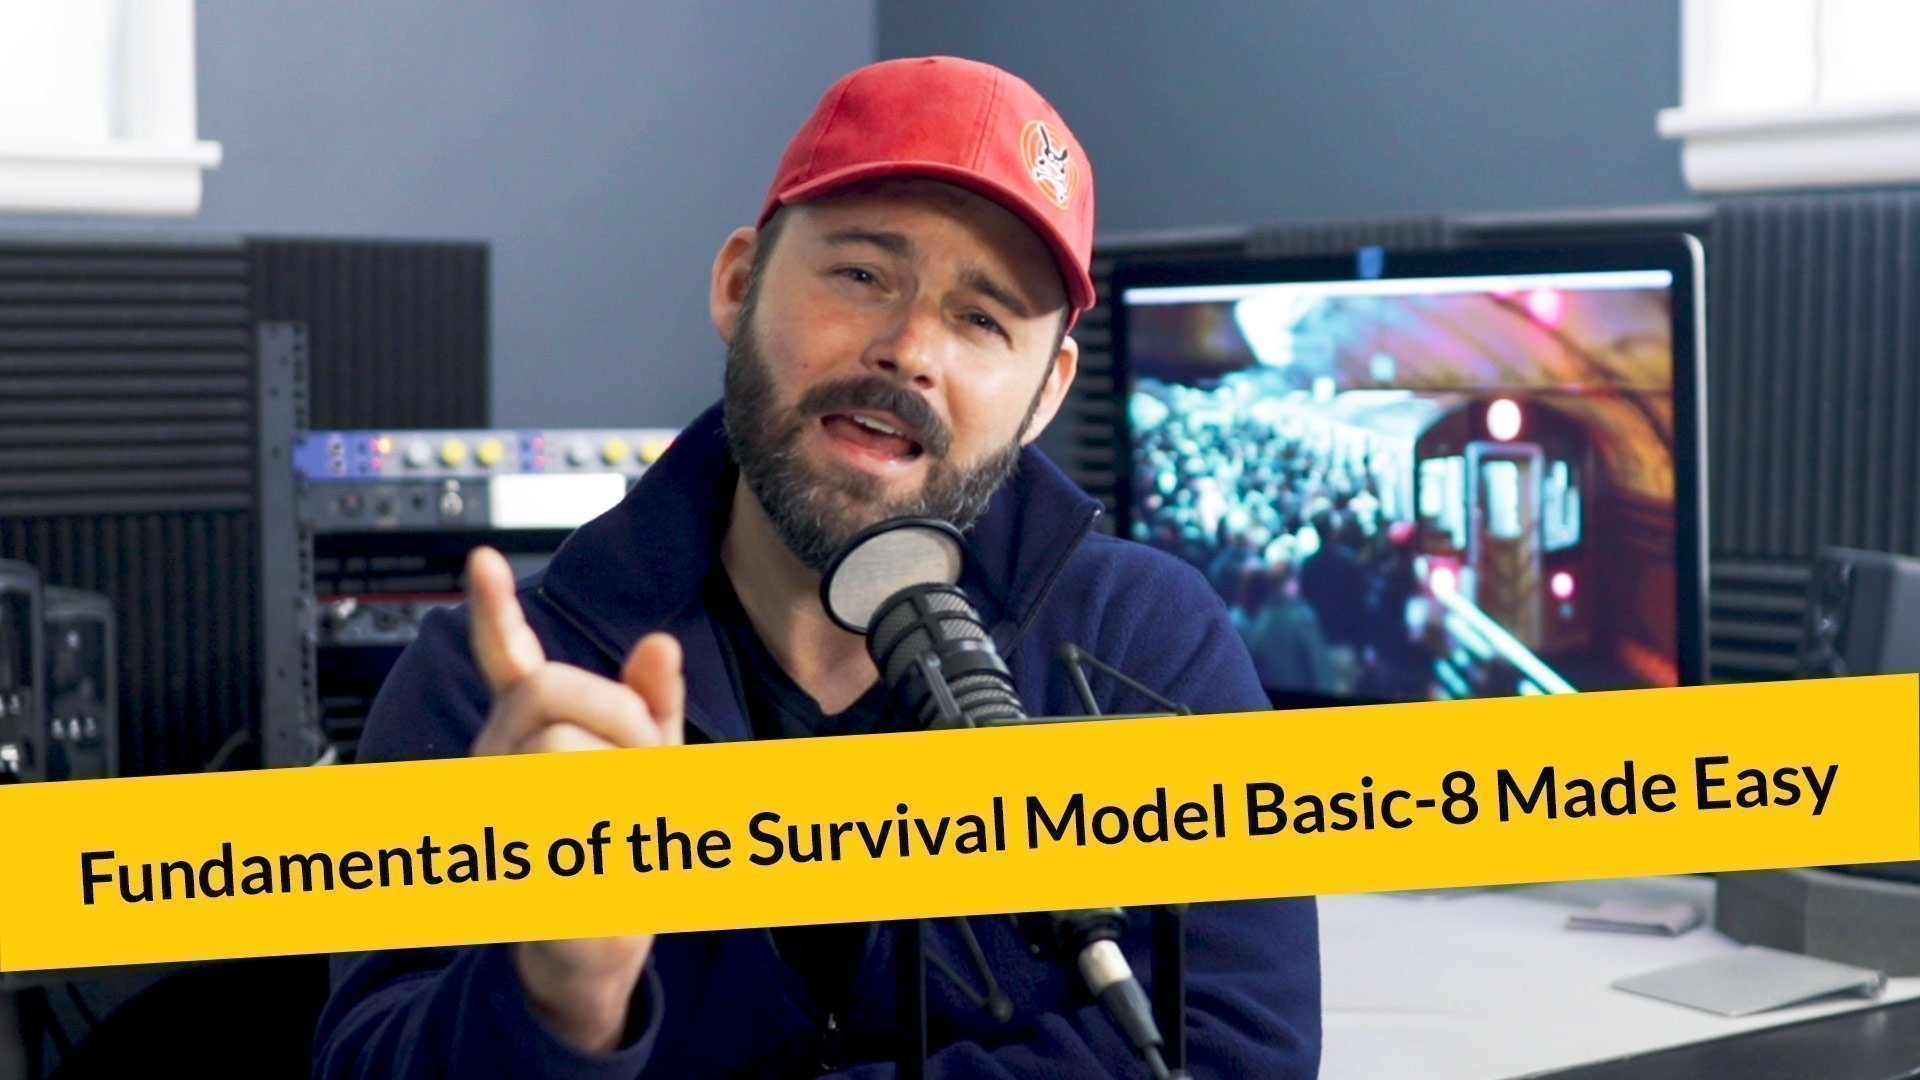 E293: Fundamentals Of The Survival Model Basic-8 Made Easy